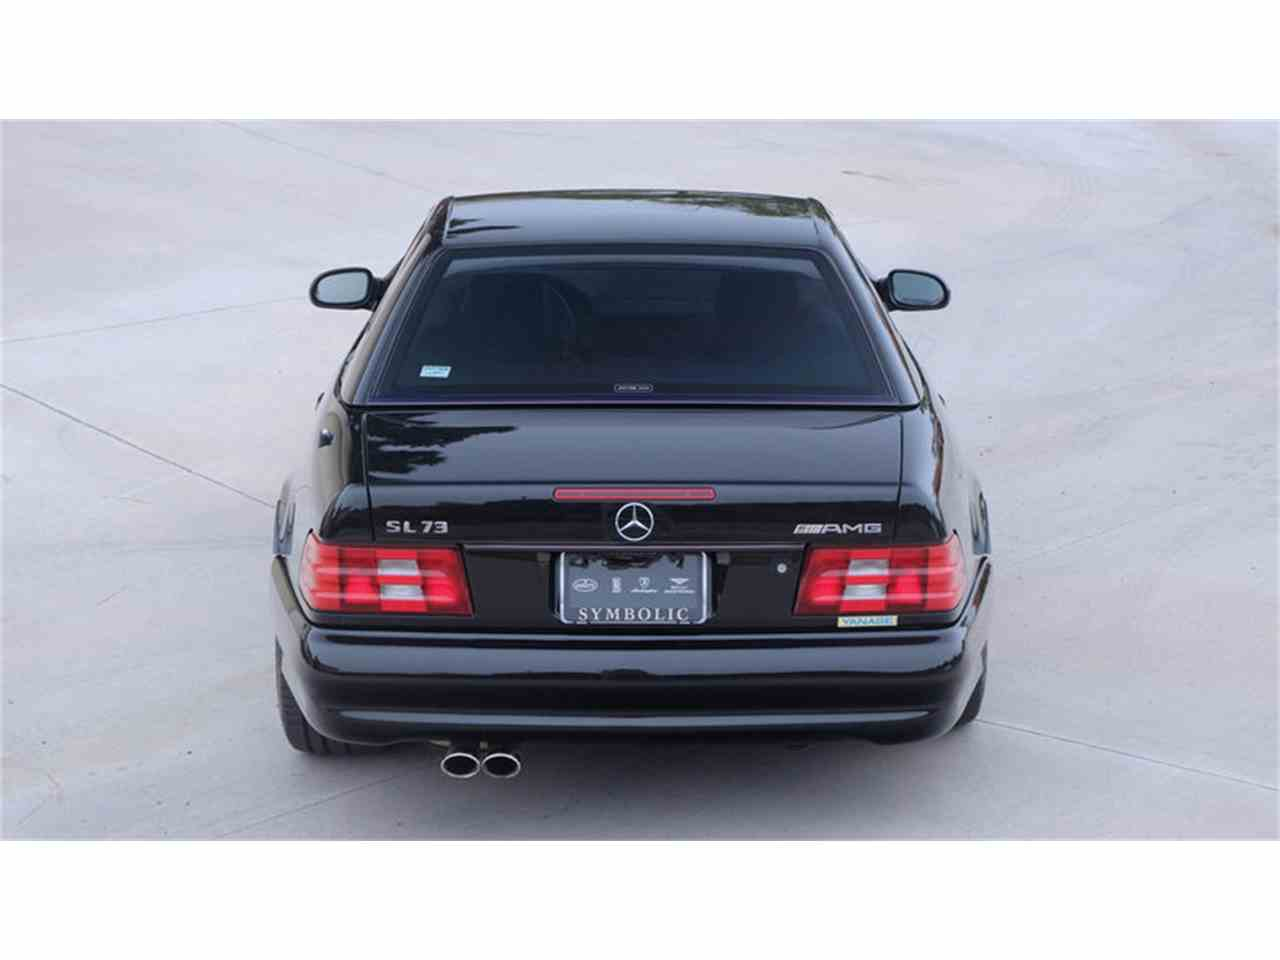 Large Picture of '99 SL 73 AMG - M5L9